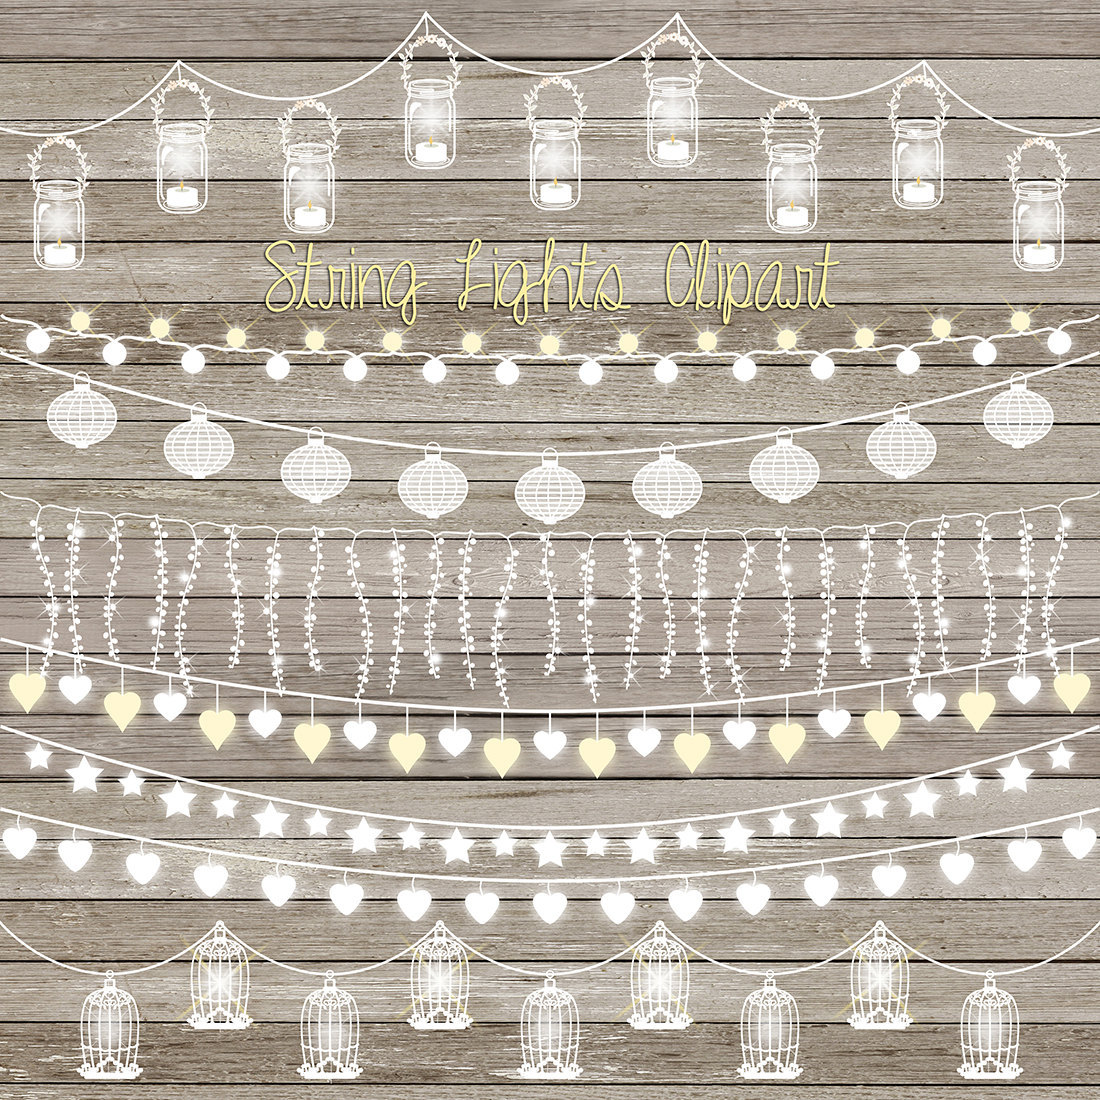 """String lights clip art: """"STRING LIGHTS CLIPART"""" with wedding."""